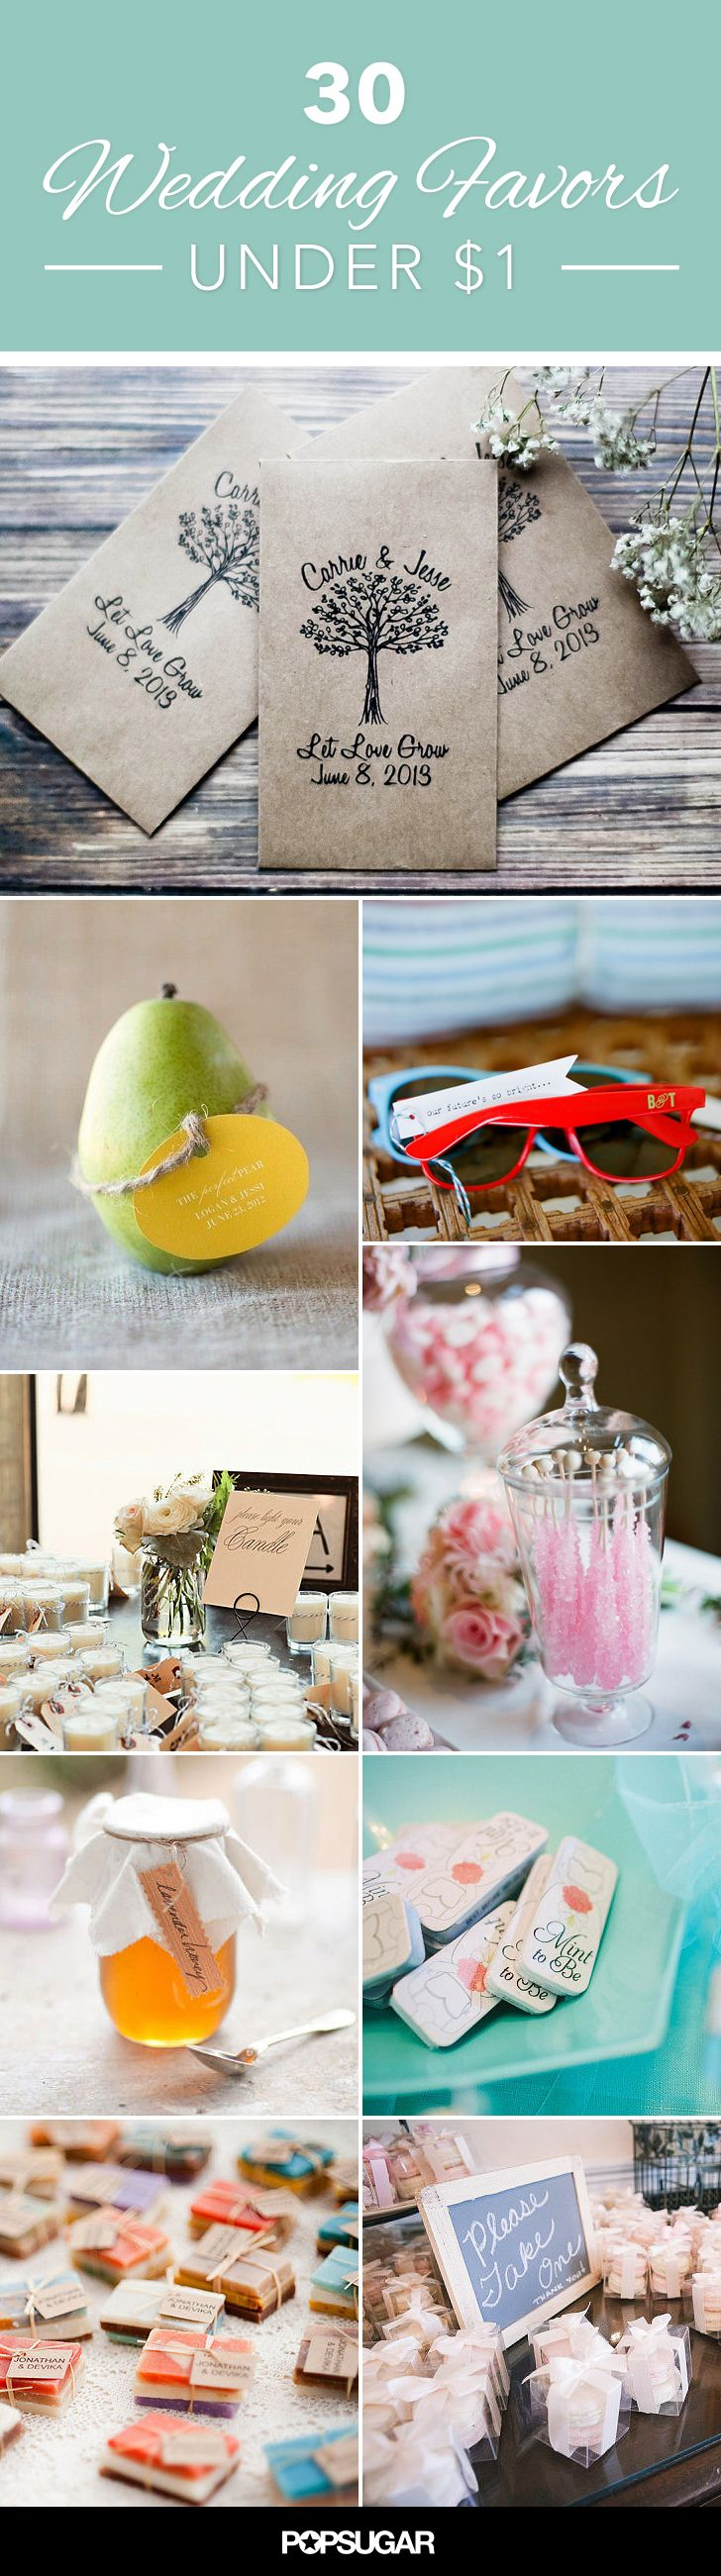 30 Wedding Favors That can Cost Under $1- love the recipes! That'd be perfect